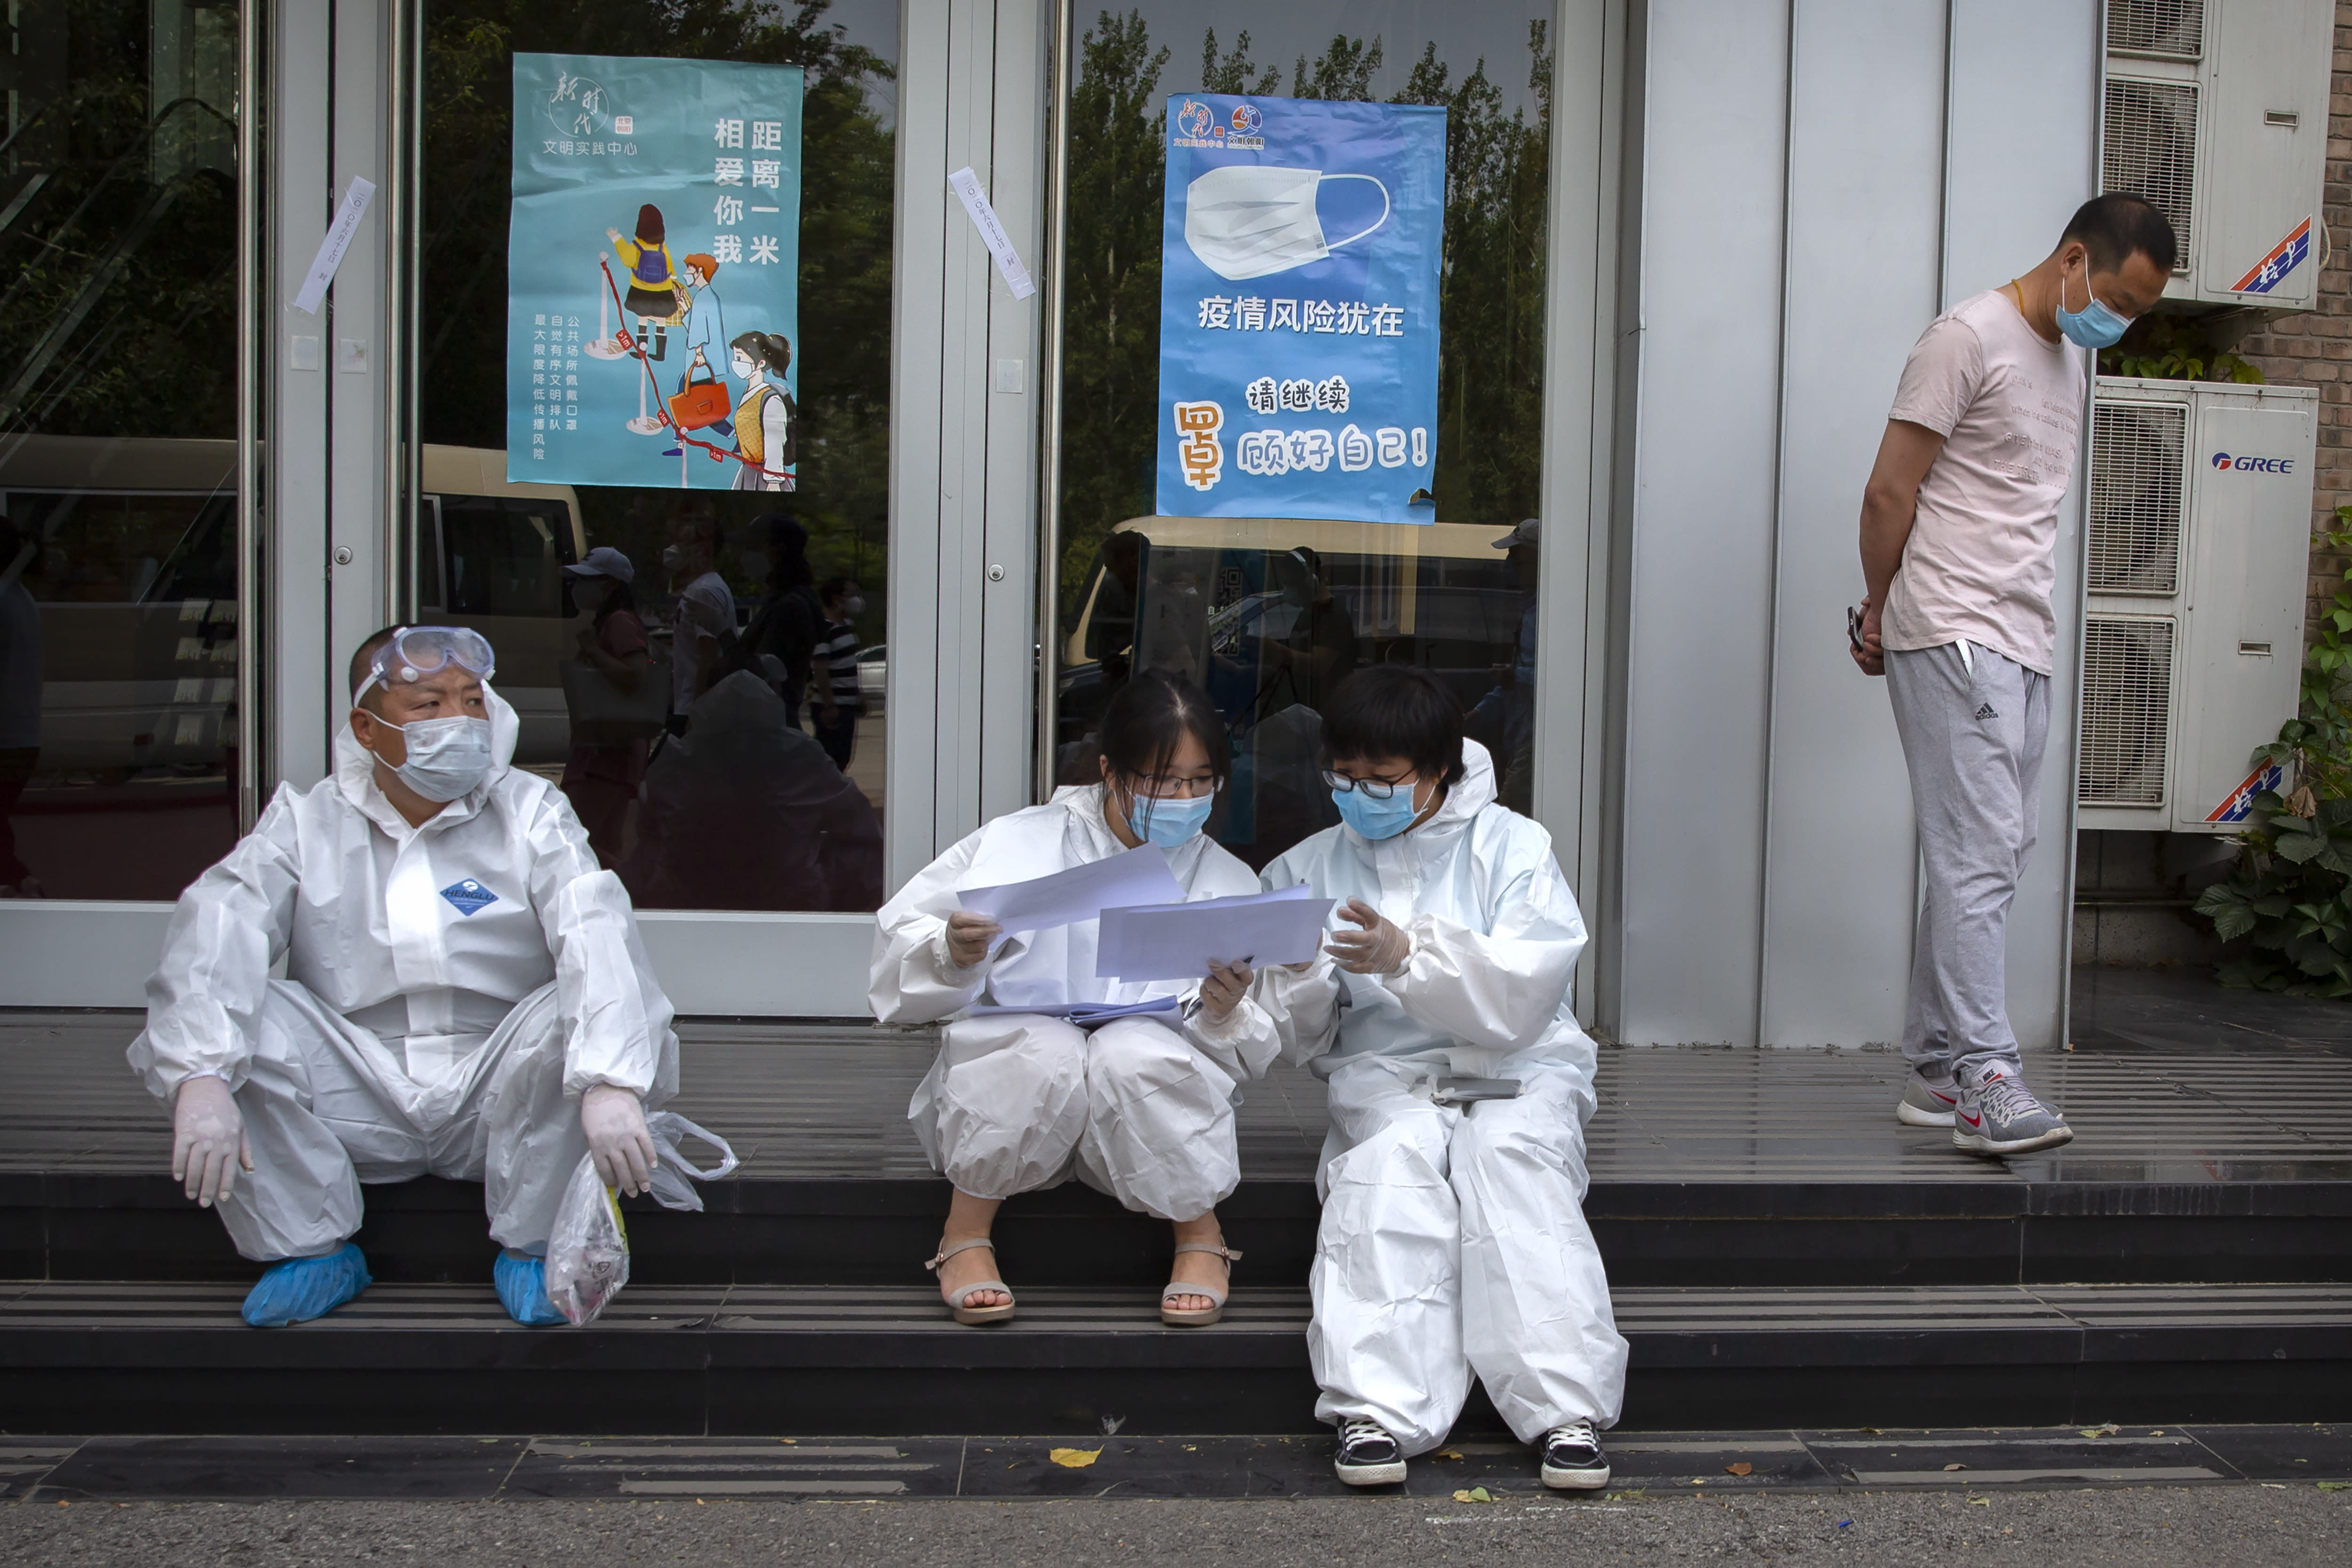 Workers in protective suits review paperwork at a COVID-19 testing site for those who were potentially exposed to the coronavirus outbreak at a wholesale food market in Beijing, Wednesday, June 17, 2020. As the number of cases of COVID-19 in Beijing climbed in recent days following an outbreak linked to a wholesale food market, officials announced they had identified hundreds of thousands of people who needed to be tested for the coronavirus. (AP Photo/Mark Schiefelbein)